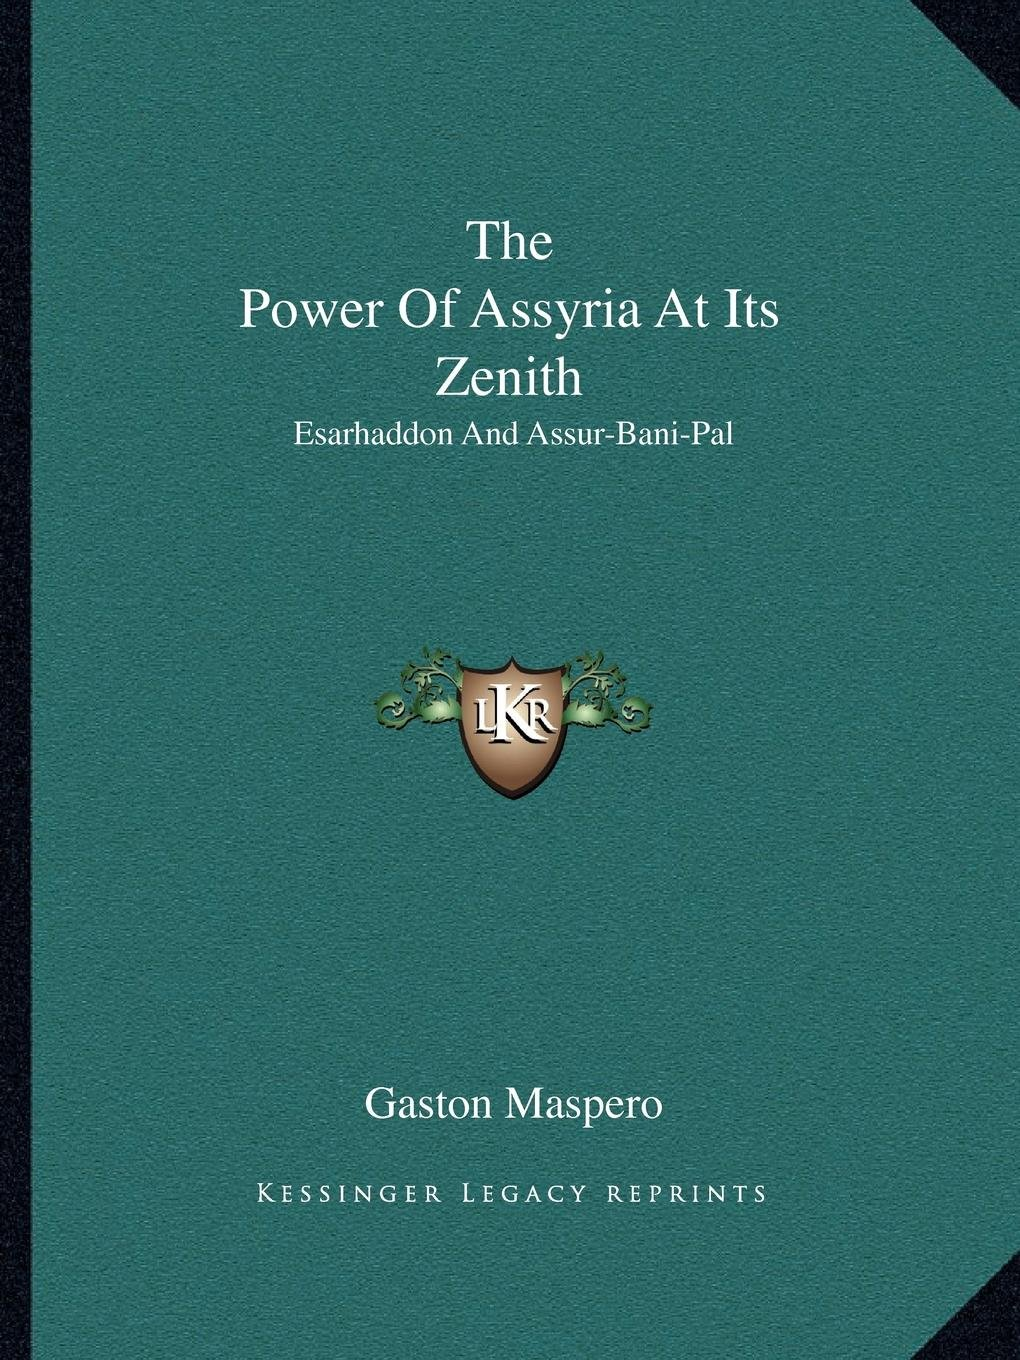 The Power Of Assyria At Its Zenith: Esarhaddon And Assur-Bani-Pal pdf